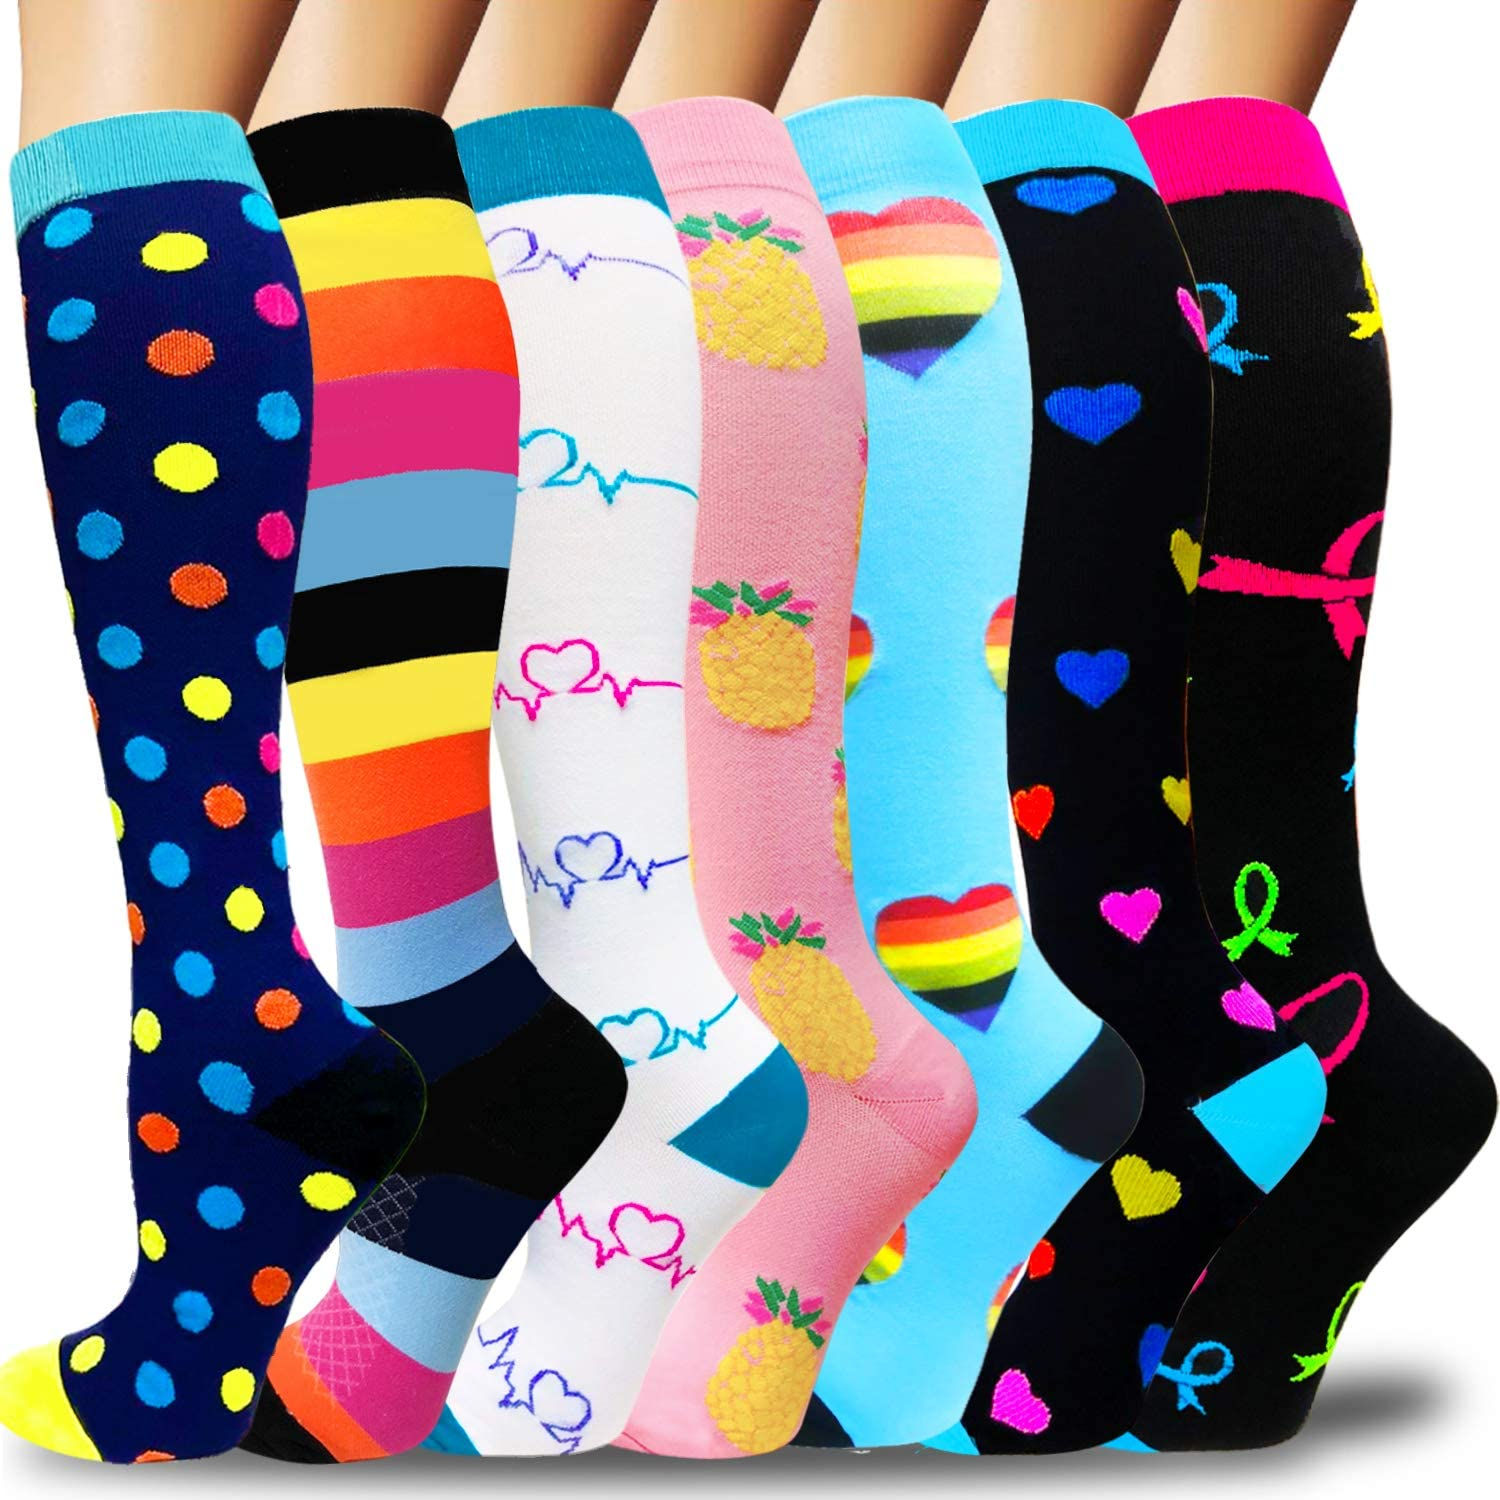 Compression Socks For Women&Men(3/7 Pairs) - Best Medical for Running,Travel,Nurses,Flight Travel,20-30mmHg